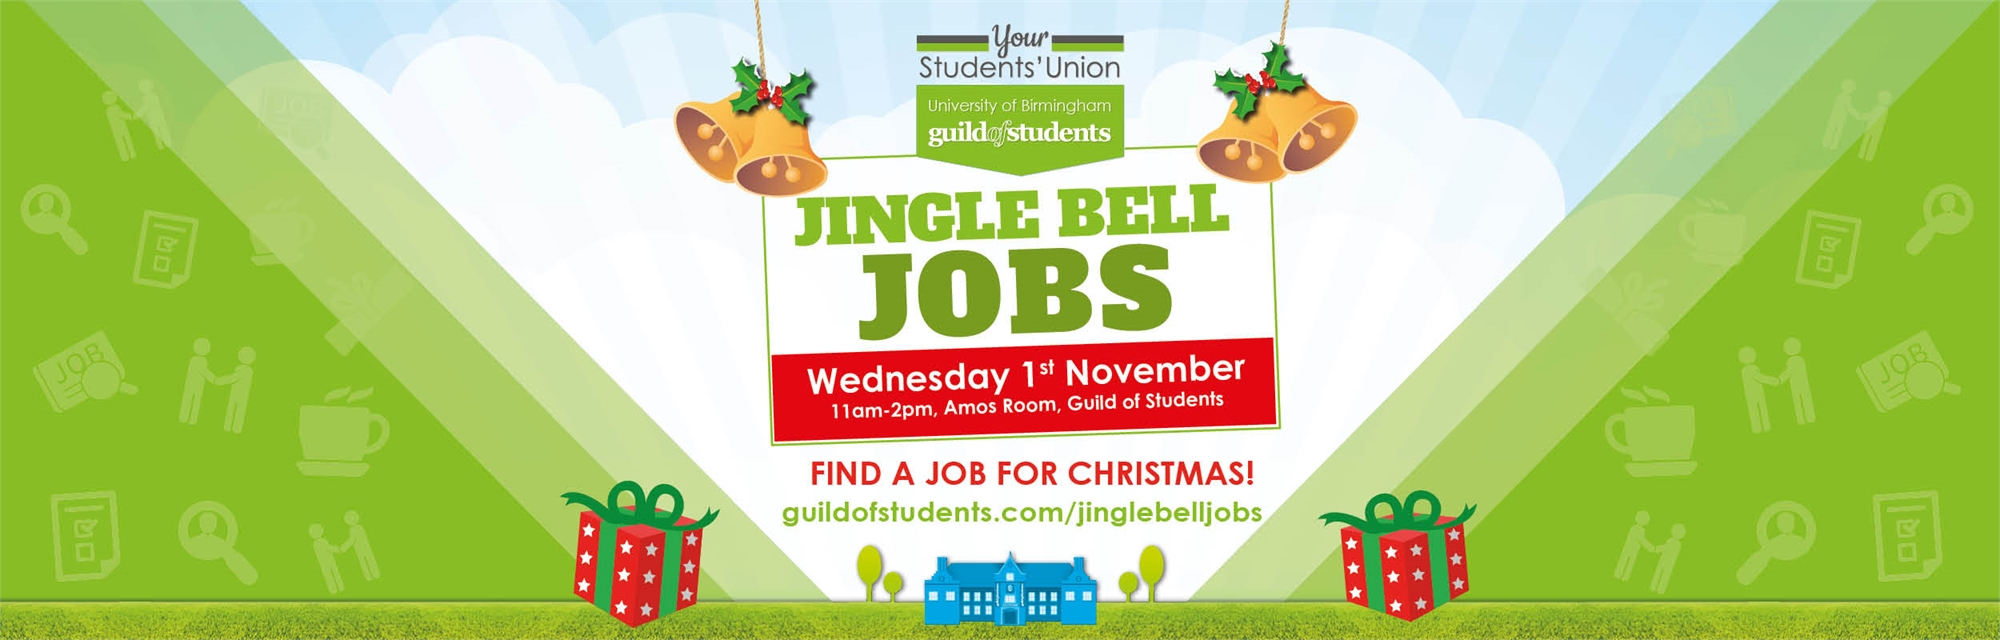 Jingle Bell Jobs - Find a job for Christmas - Wed 1st November 2017 - 11am - 2pm Amos Room - Guild o